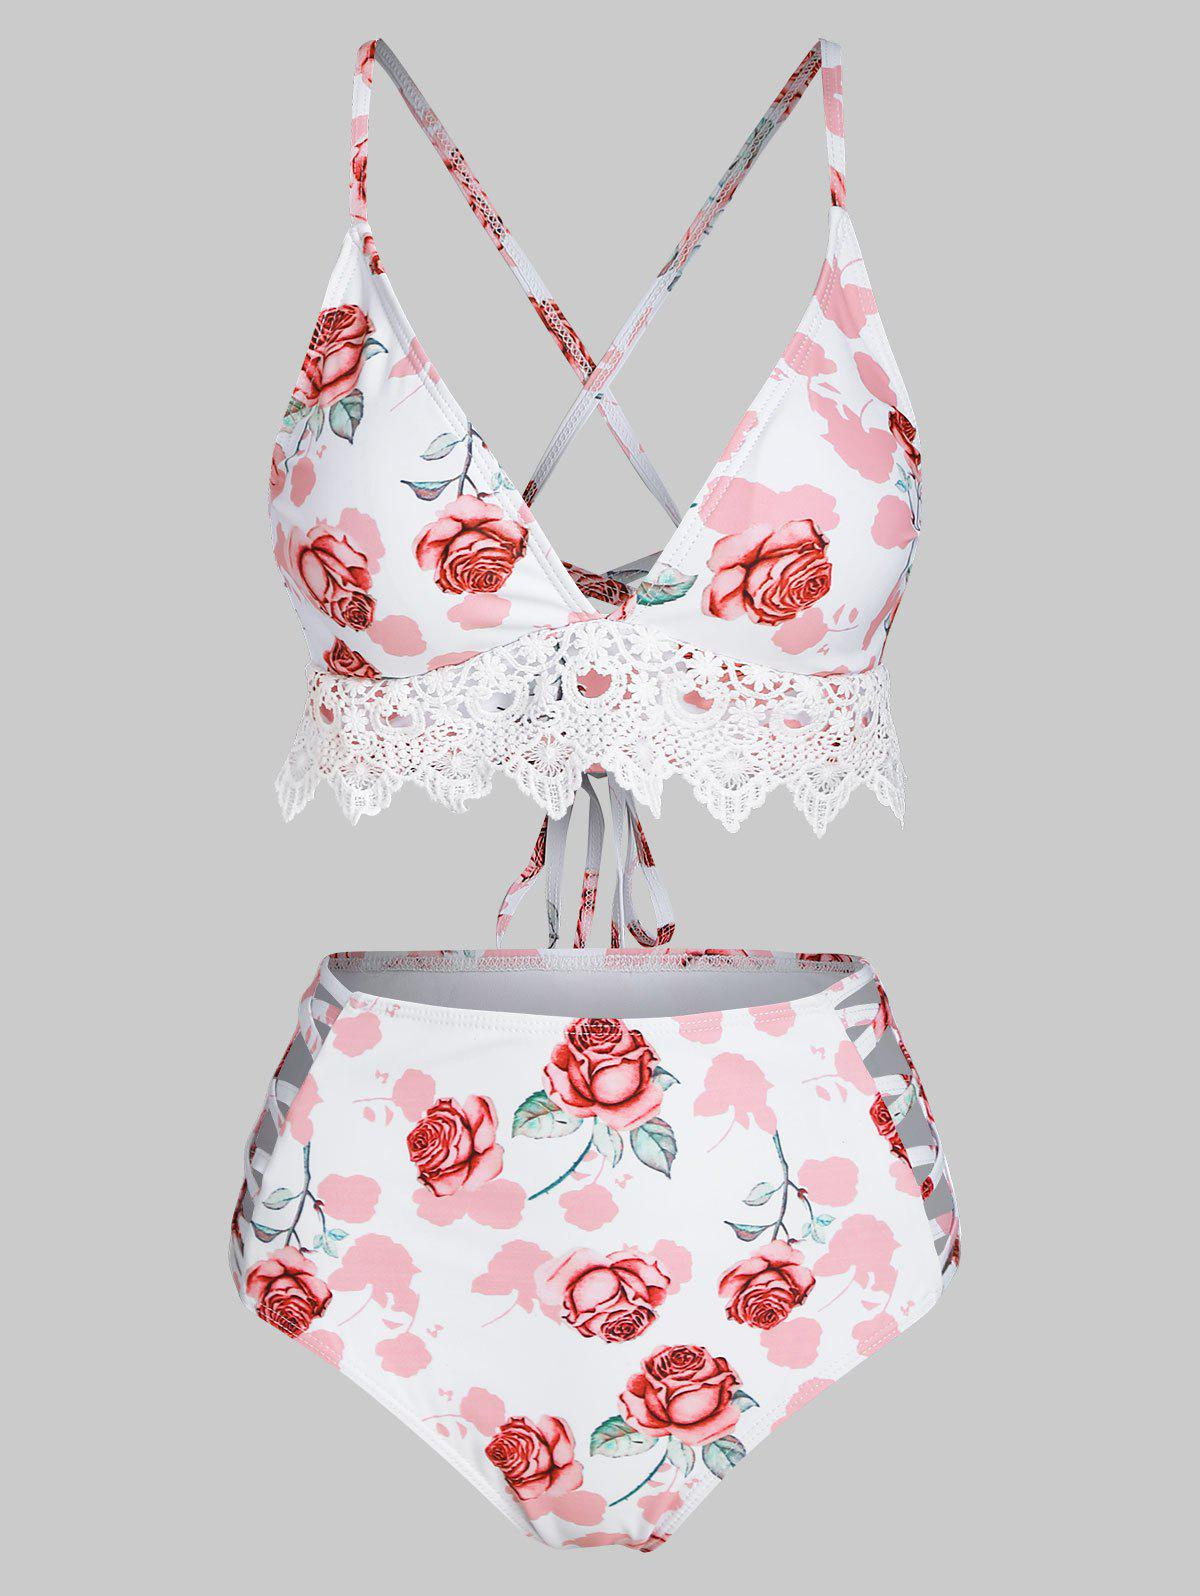 Crochet Lace Panel Rose Print Lace-up Crisscross Bikini Swimwear - LIGHT PINK L